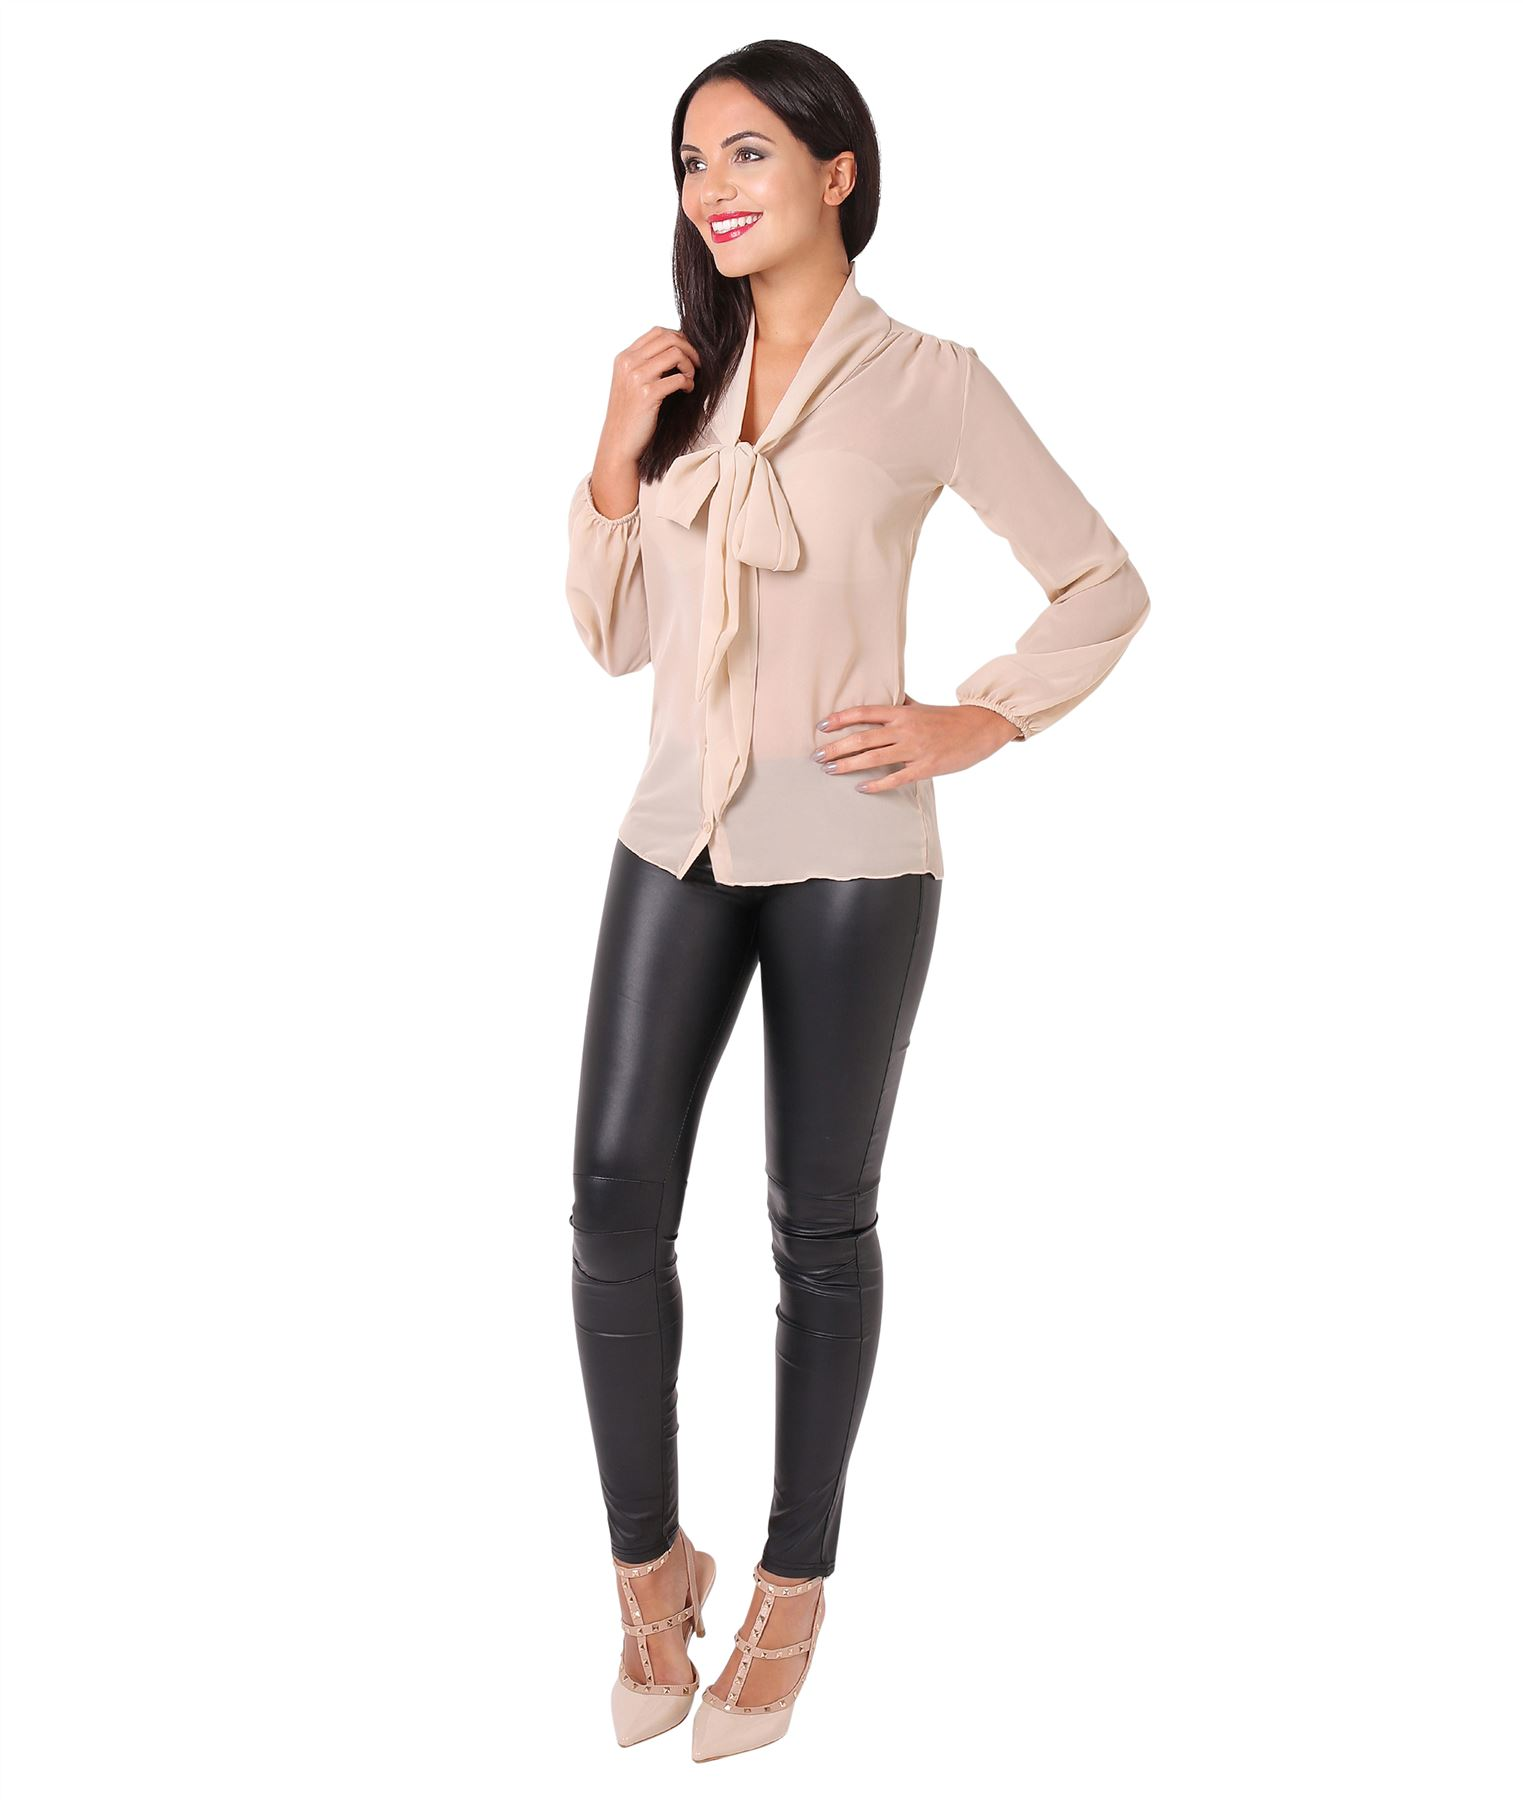 Womens-Ladies-Chiffon-Blouse-Long-Sleeve-Pussy-Bow-Top-Plain-Shirt-Office-Party thumbnail 20